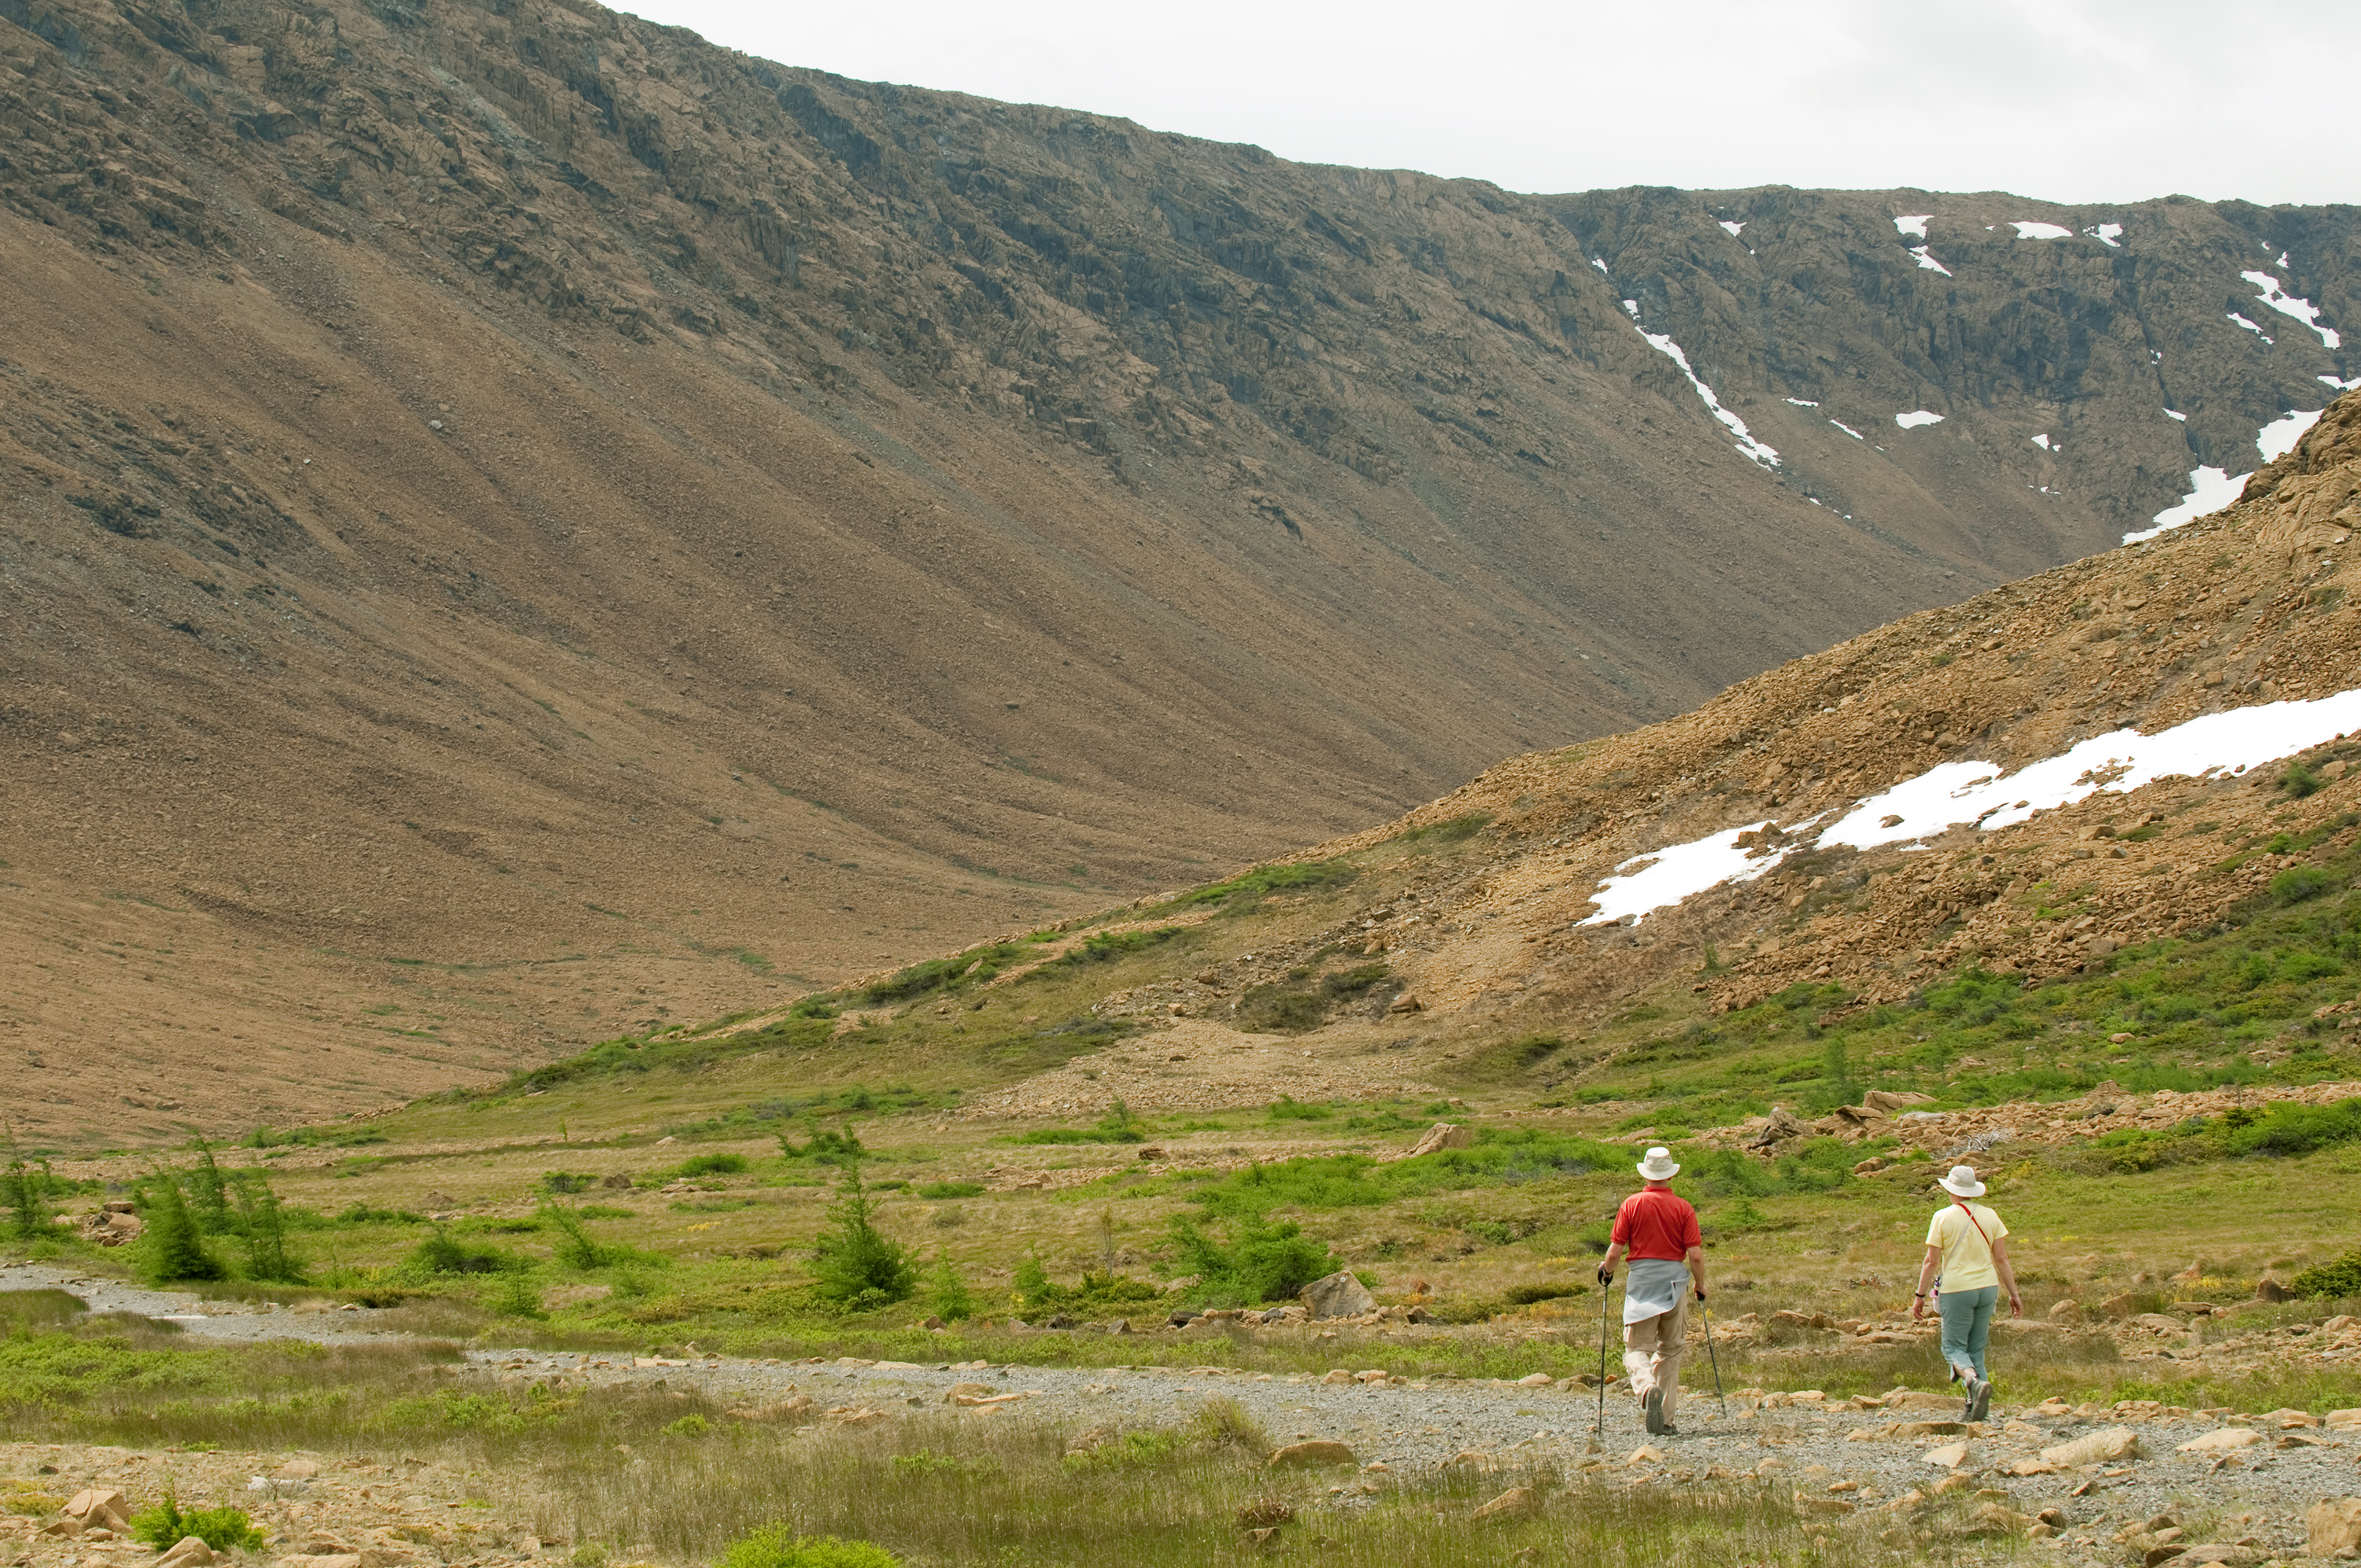 Hikers in Newfoundland